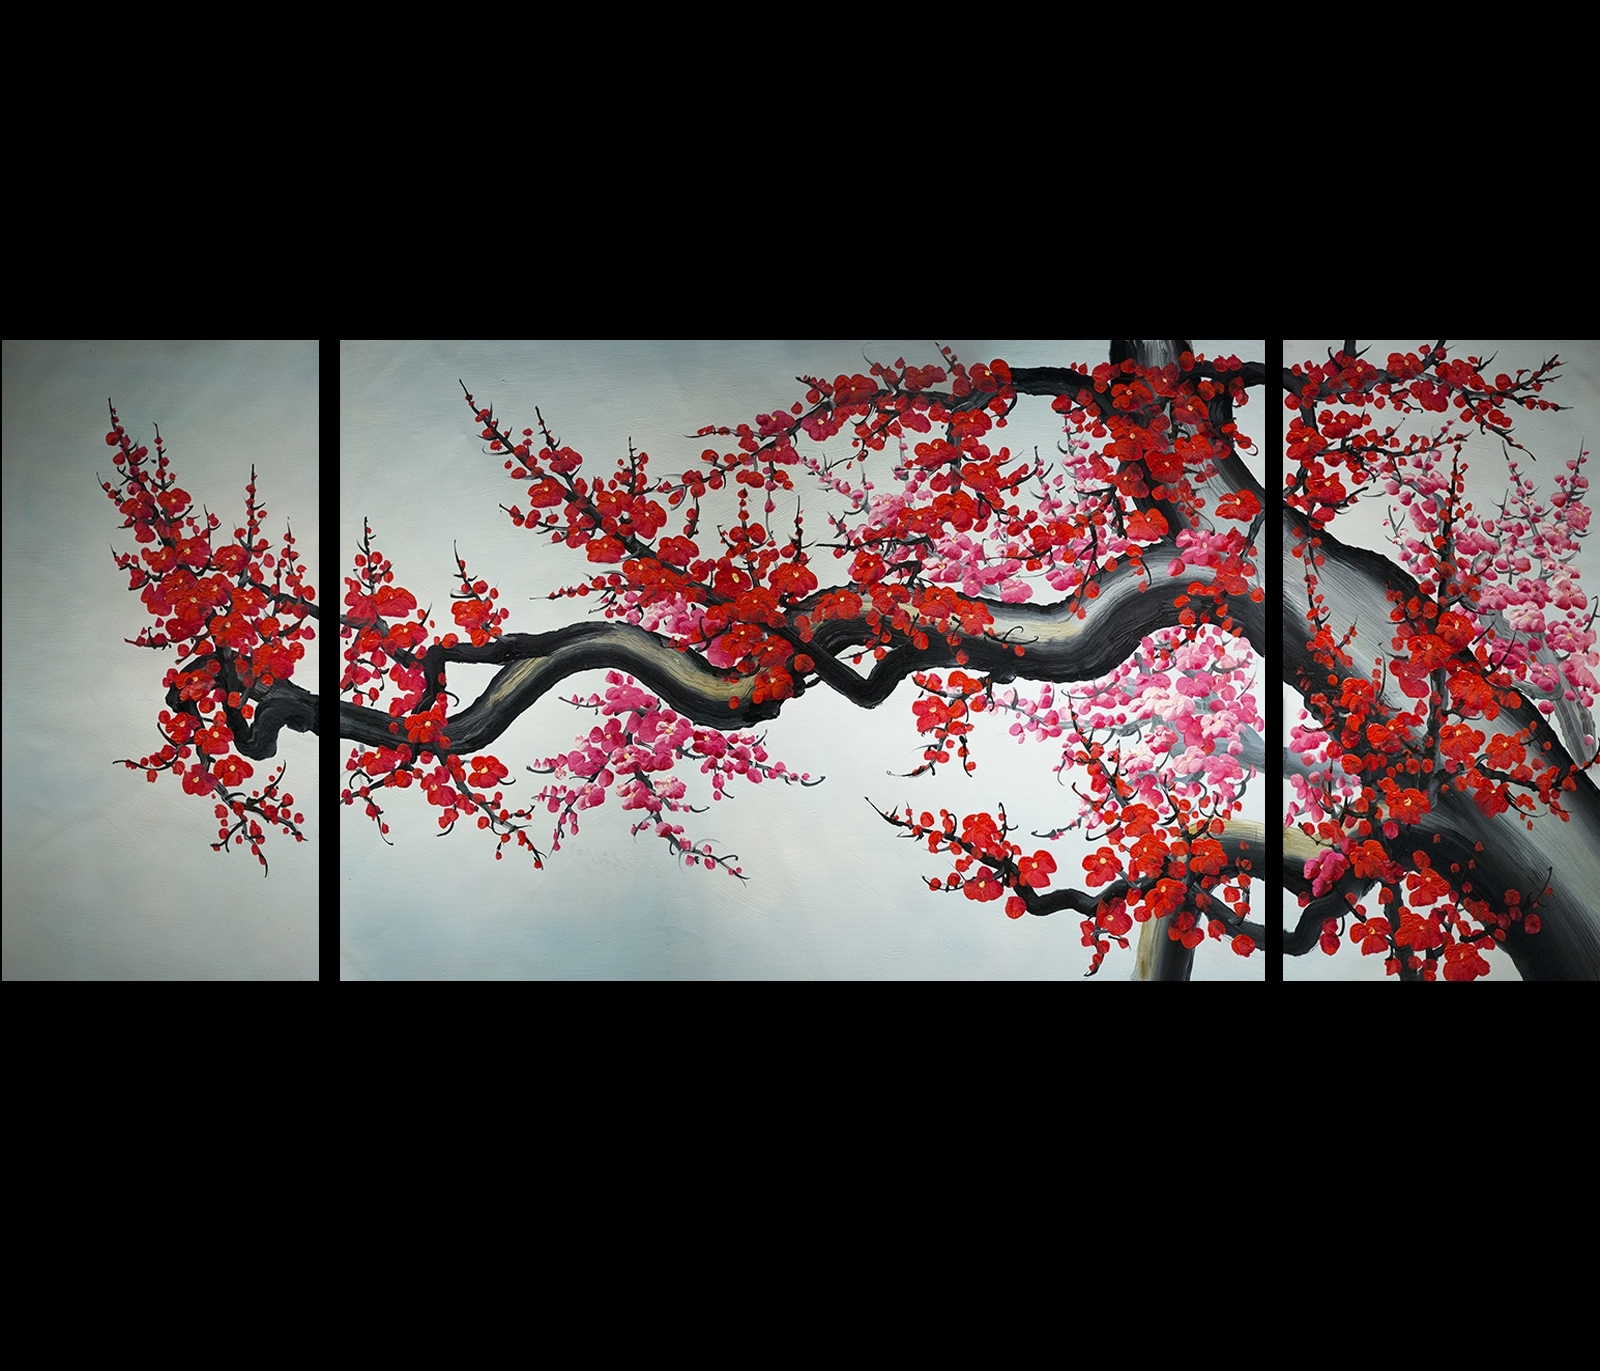 Wall Art Modern Abstract Painting Framed Cherry Blossom Pertaining To Newest Abstract Cherry Blossom Wall Art (View 18 of 20)